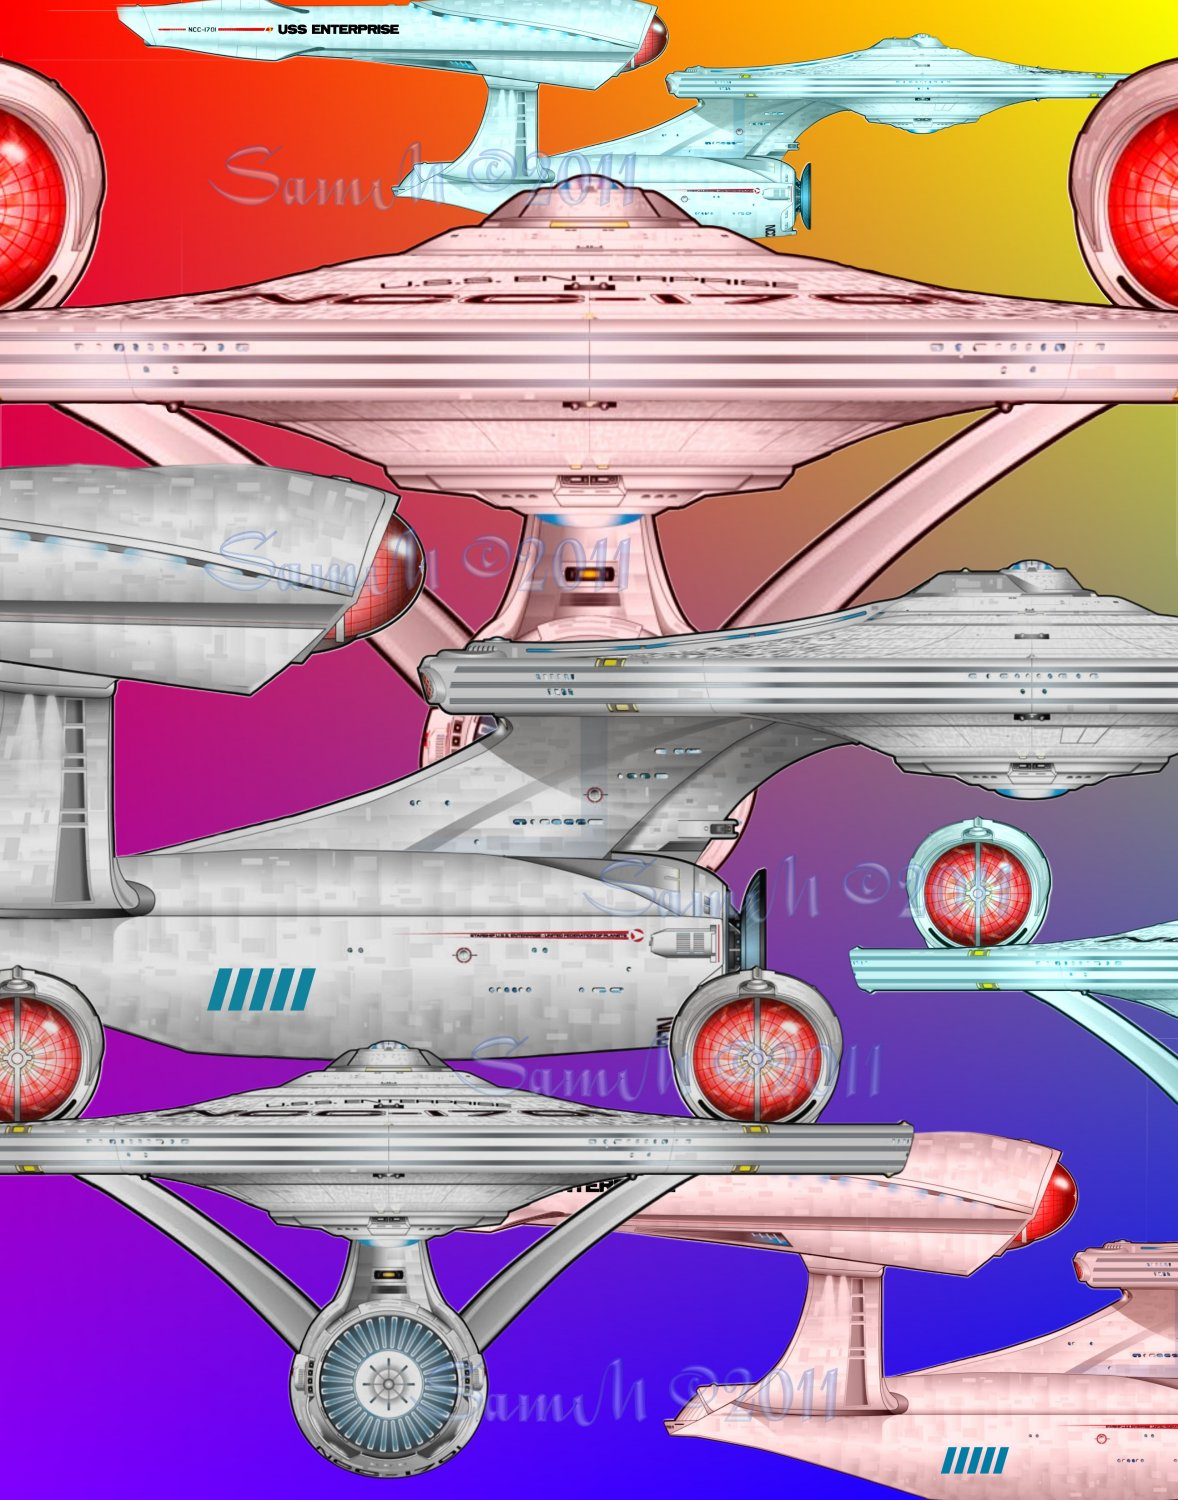 Star Trek 2009 USS Enterprise Spectrum 8x10 Print, Abstratct Digital Fine Art Image Photo